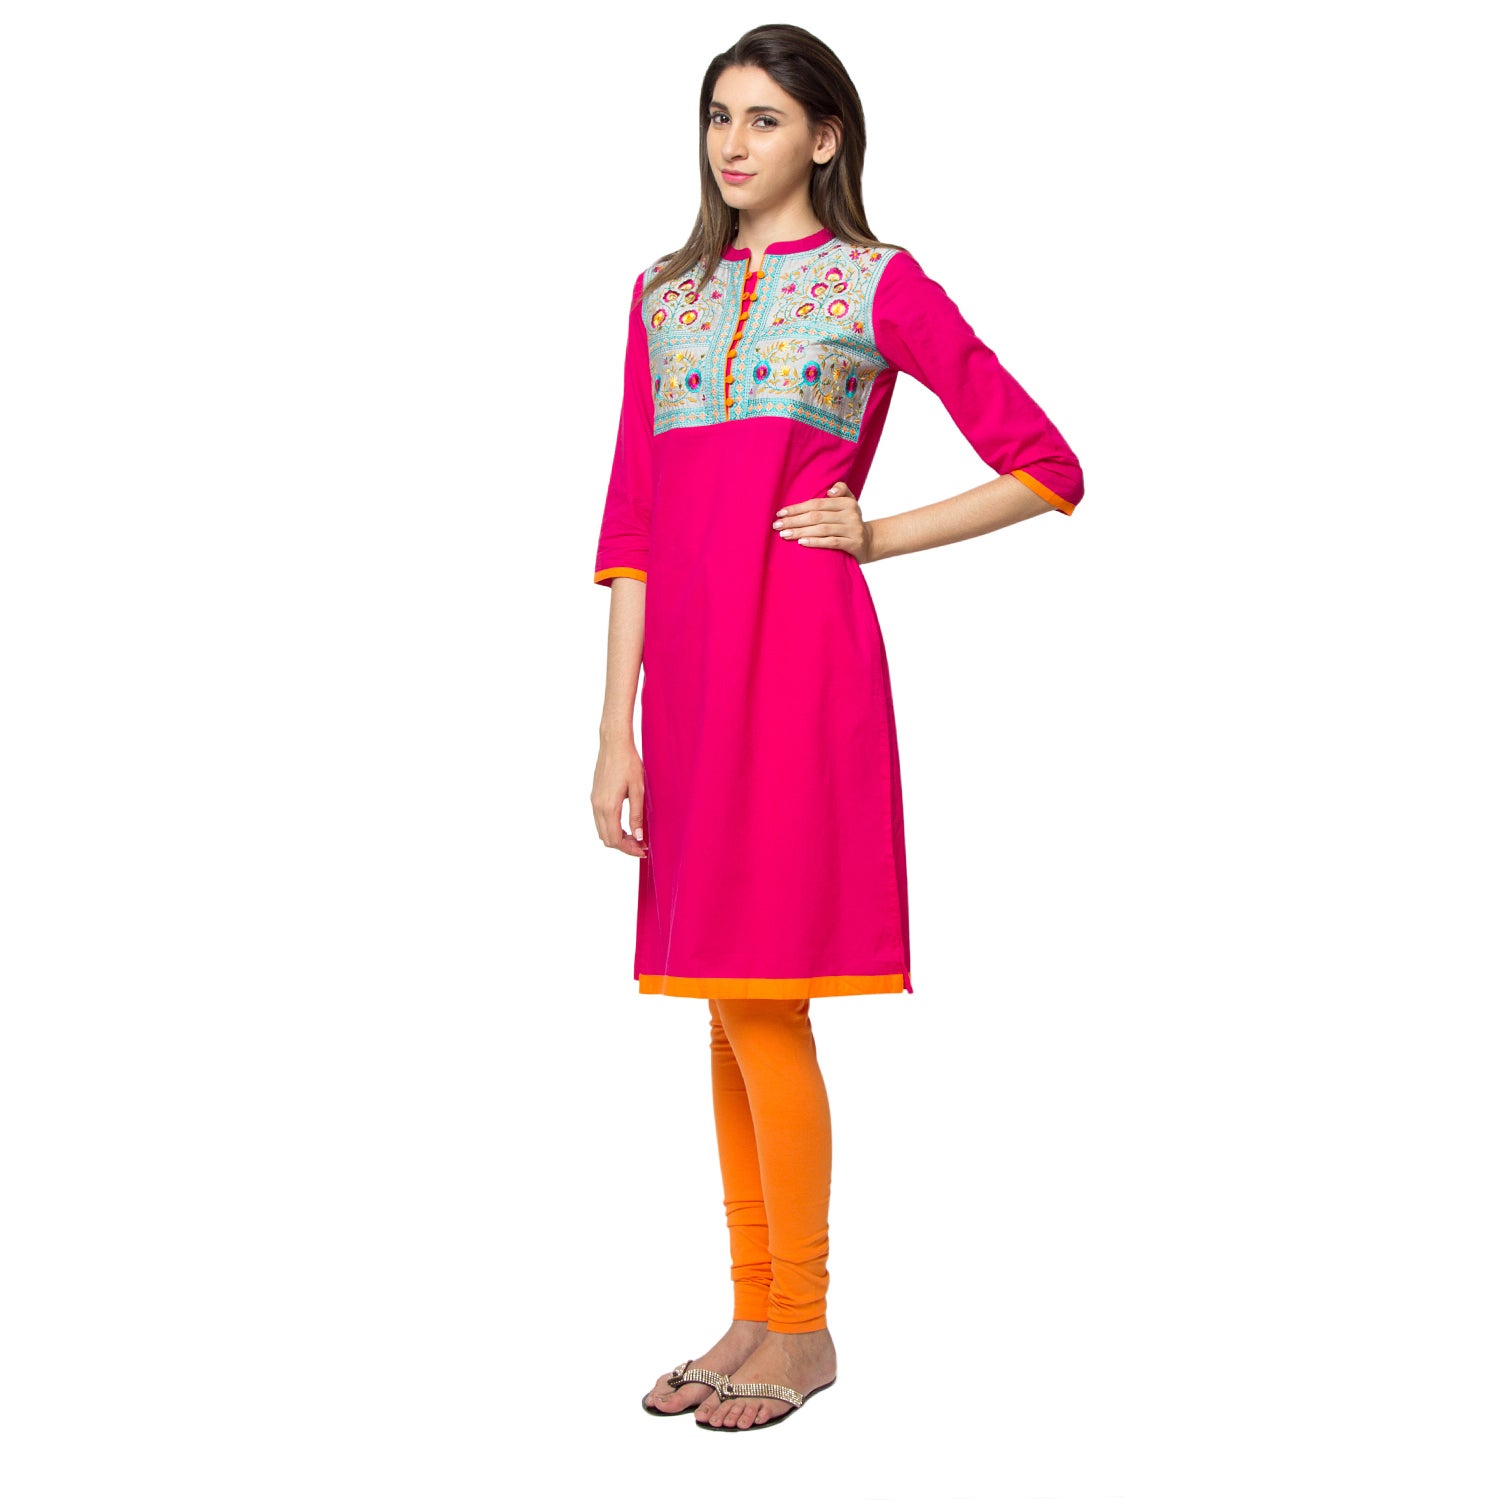 18918fa6d9d Shop Handmade In-Sattva Ethnicity Women's Royal Kurta Tunic (India) - Free  Shipping On Orders Over $45 - Overstock - 12157112